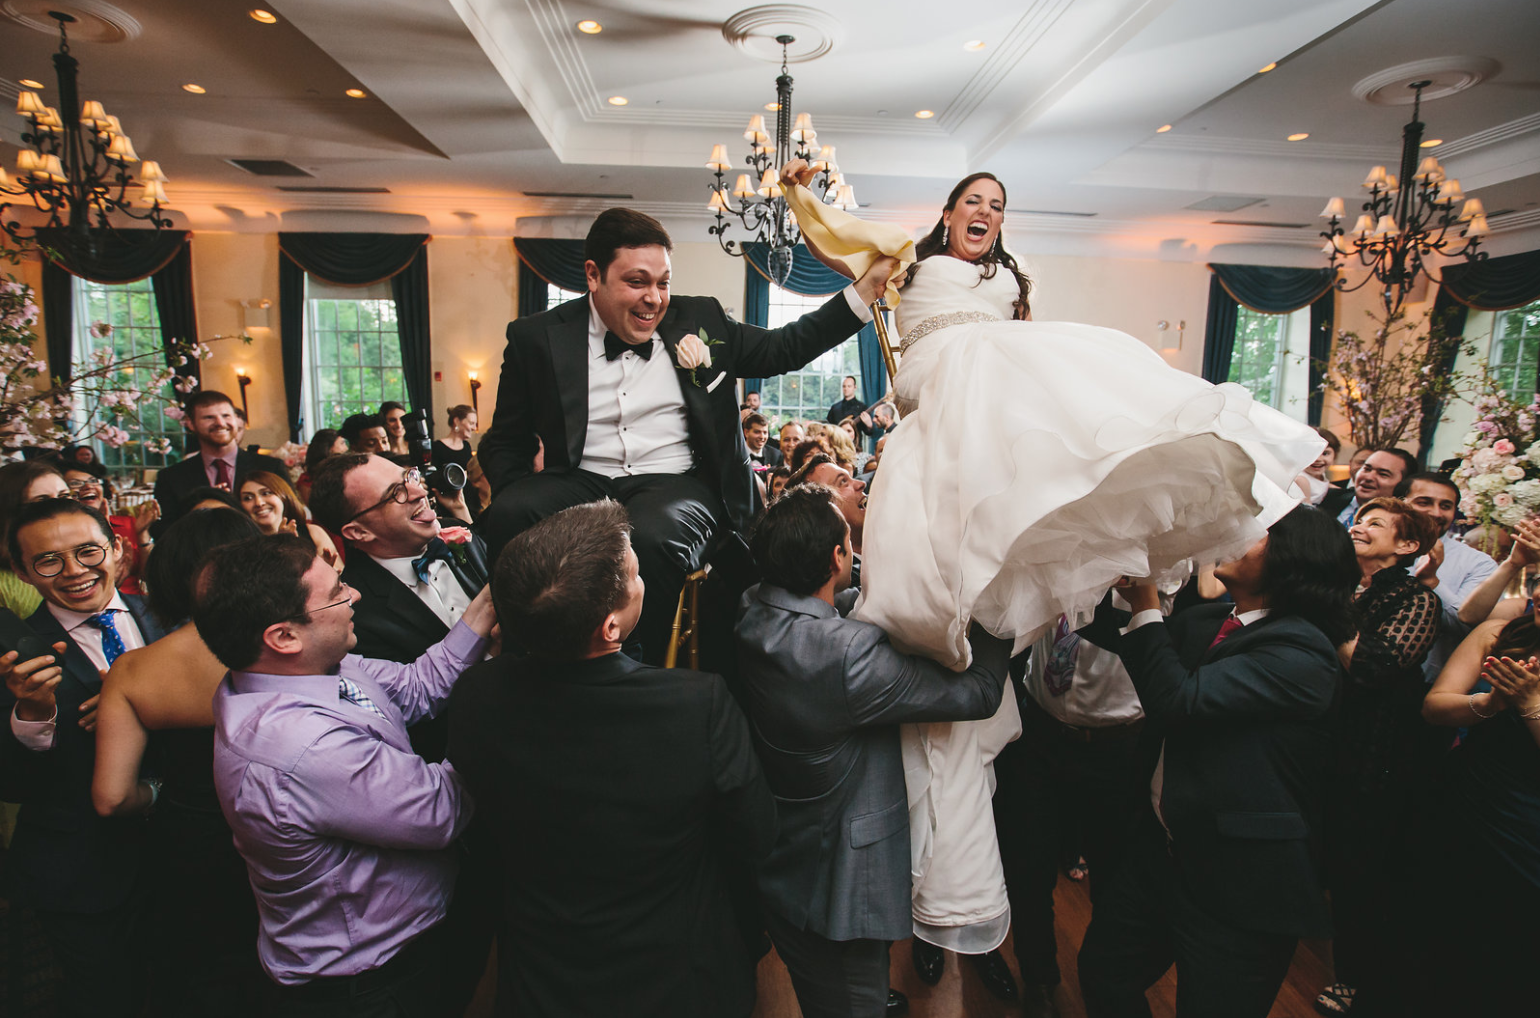 JESSICA + DAVID - CLASSIC JEWISH WEDDING ⚡ FRESH FLORAL CHUPPAH ⚡ 250 GUESTS FROM AROUND THE GLOBE ⚡ ACCENTS WITH A NOD TO NY ⚡ A DANCE PARTY TO END THEM ALL